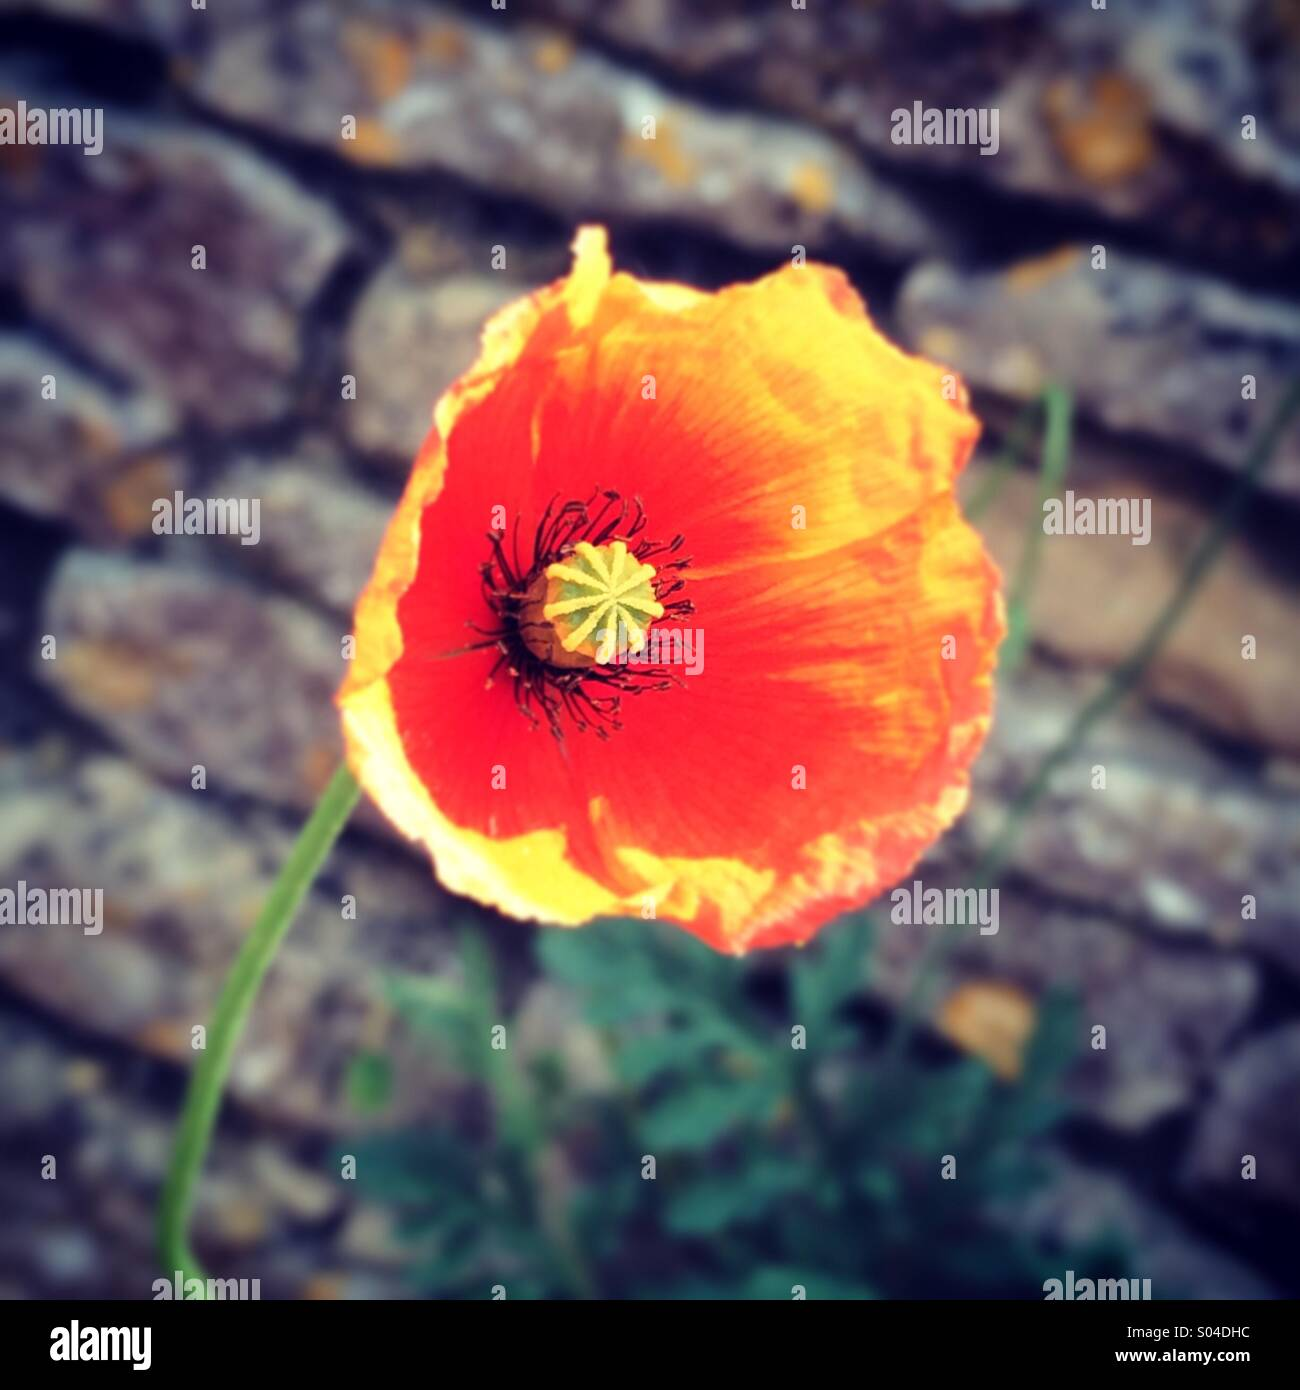 Red poppy against brick wall - Stock Image